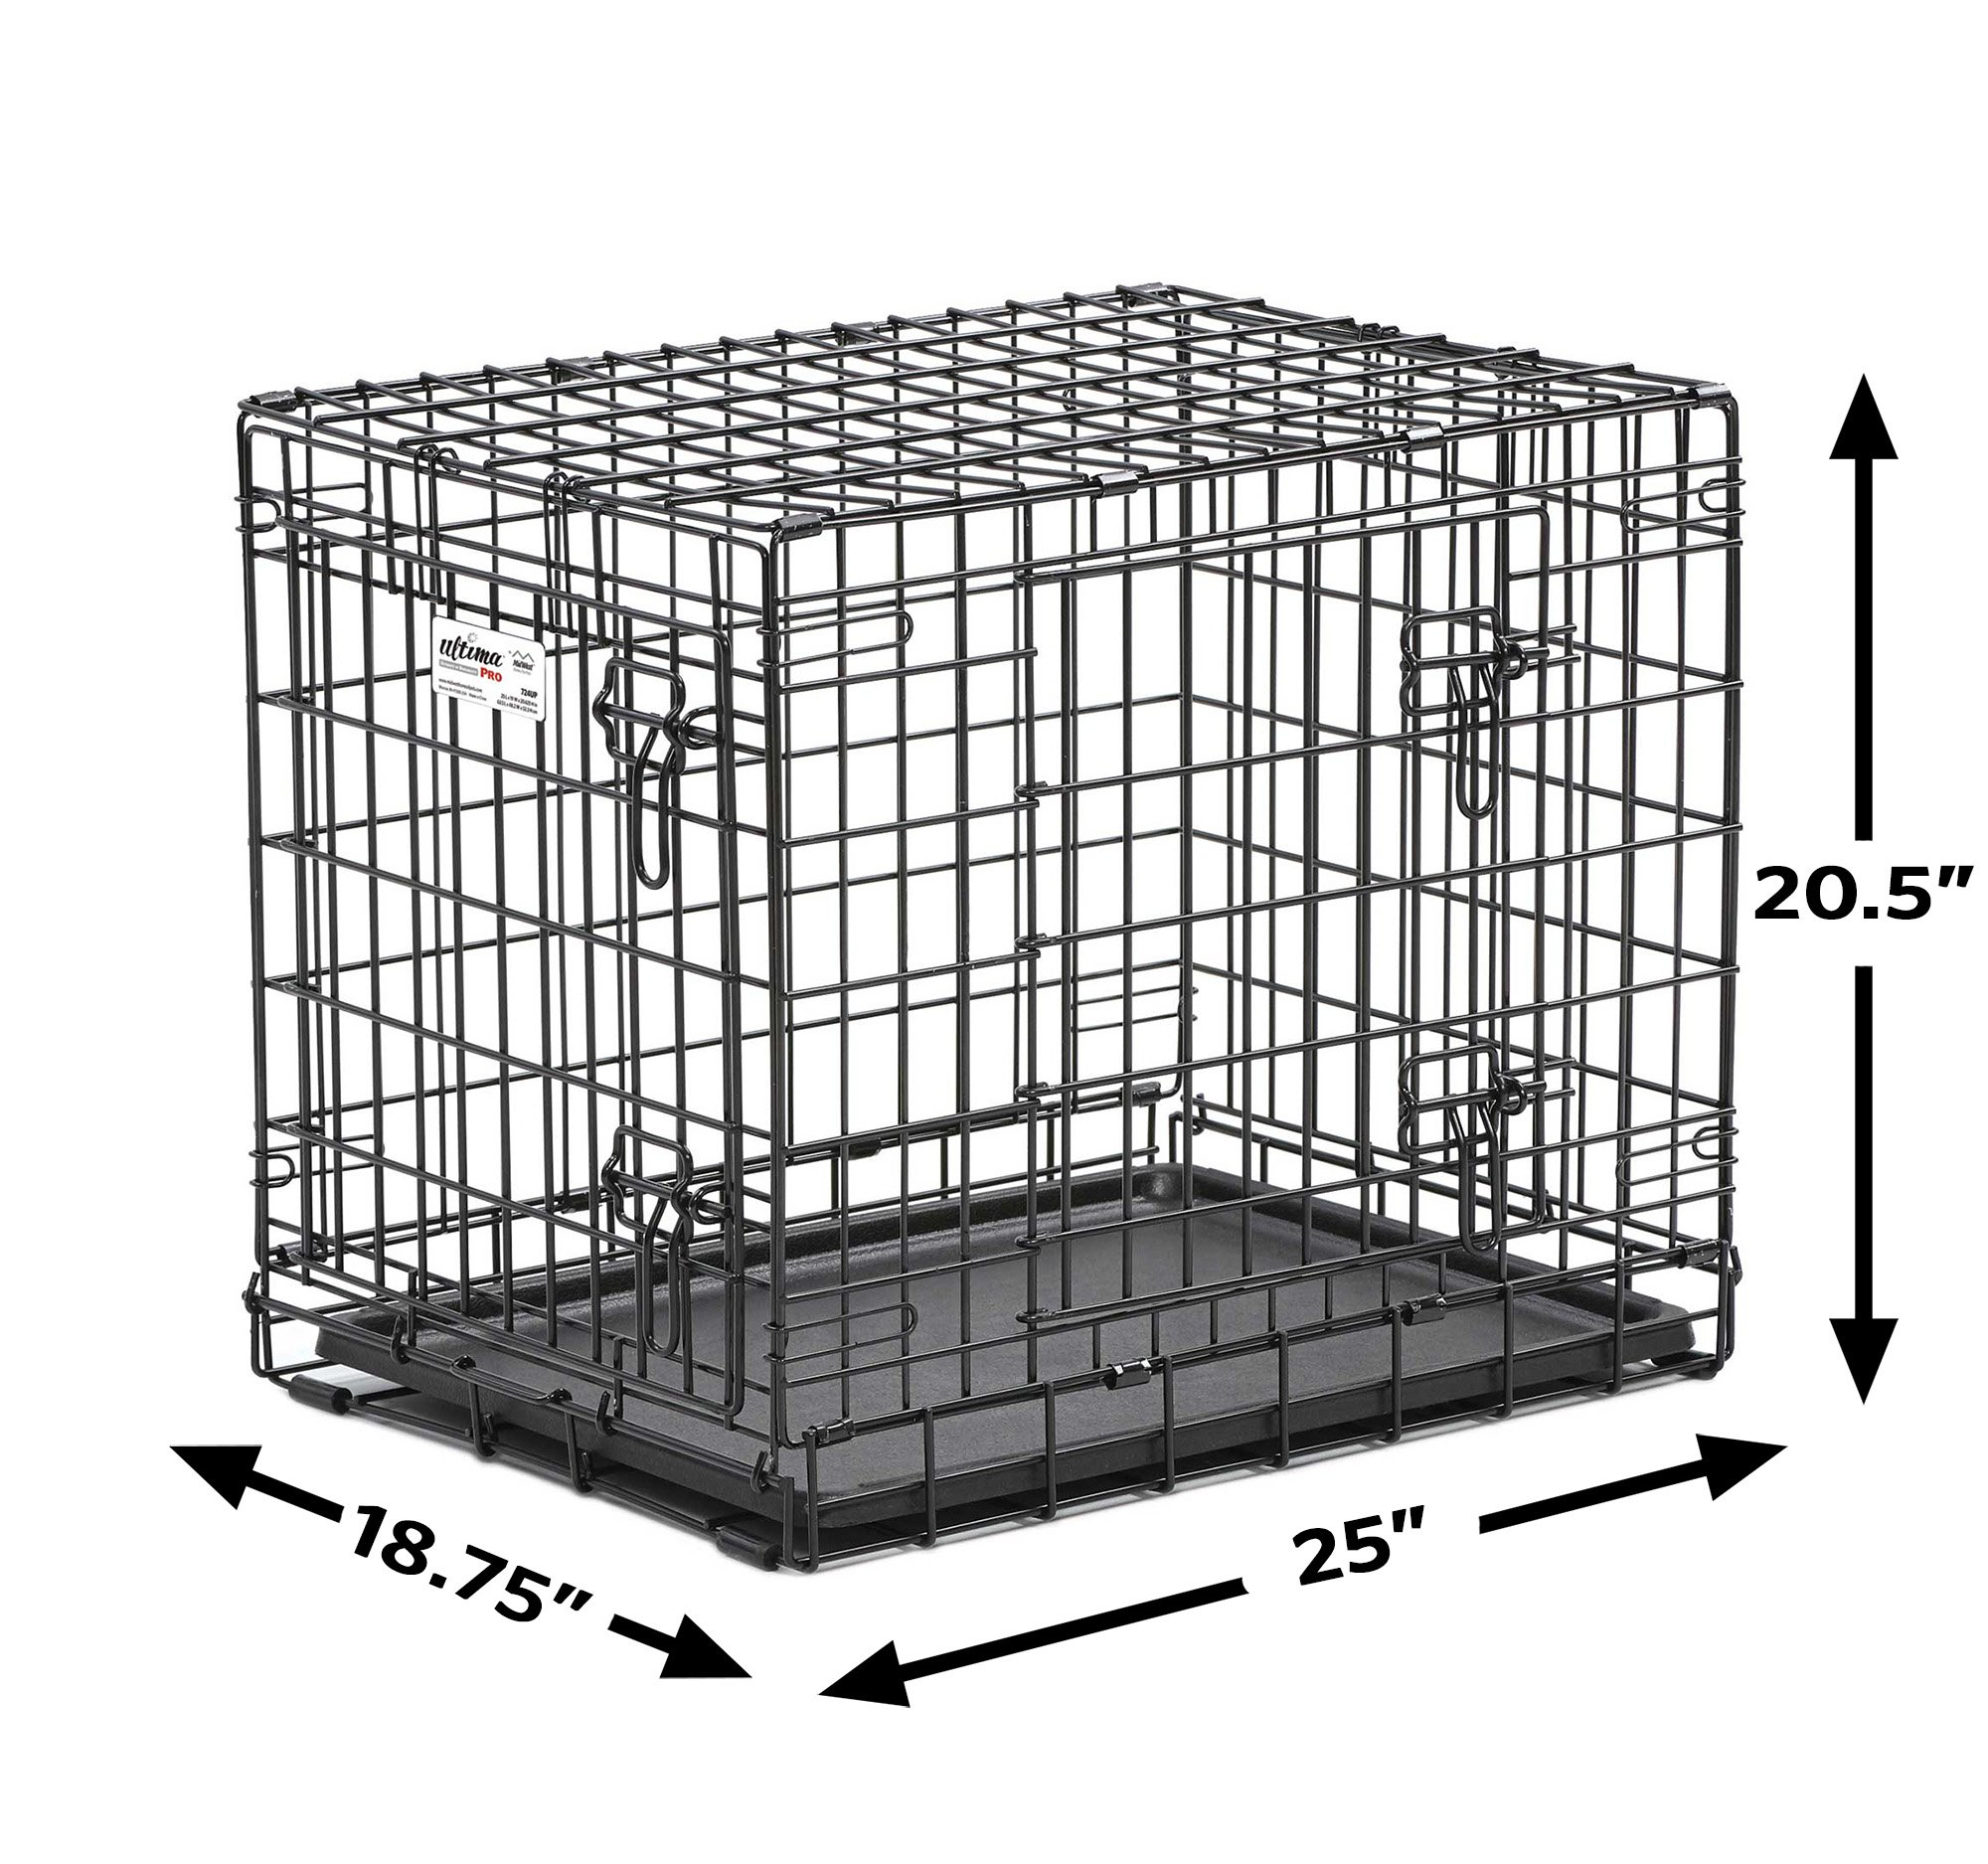 Ultima Pro (Professional Series & Most Durable MidWest Dog Crate) Extra-Strong Double Door Folding Metal Dog Crate w/Divider Panel, Floor Protecting Roller Feet & Leak-Proof Plastic Pan by MidWest Homes for Pets (Image #3)